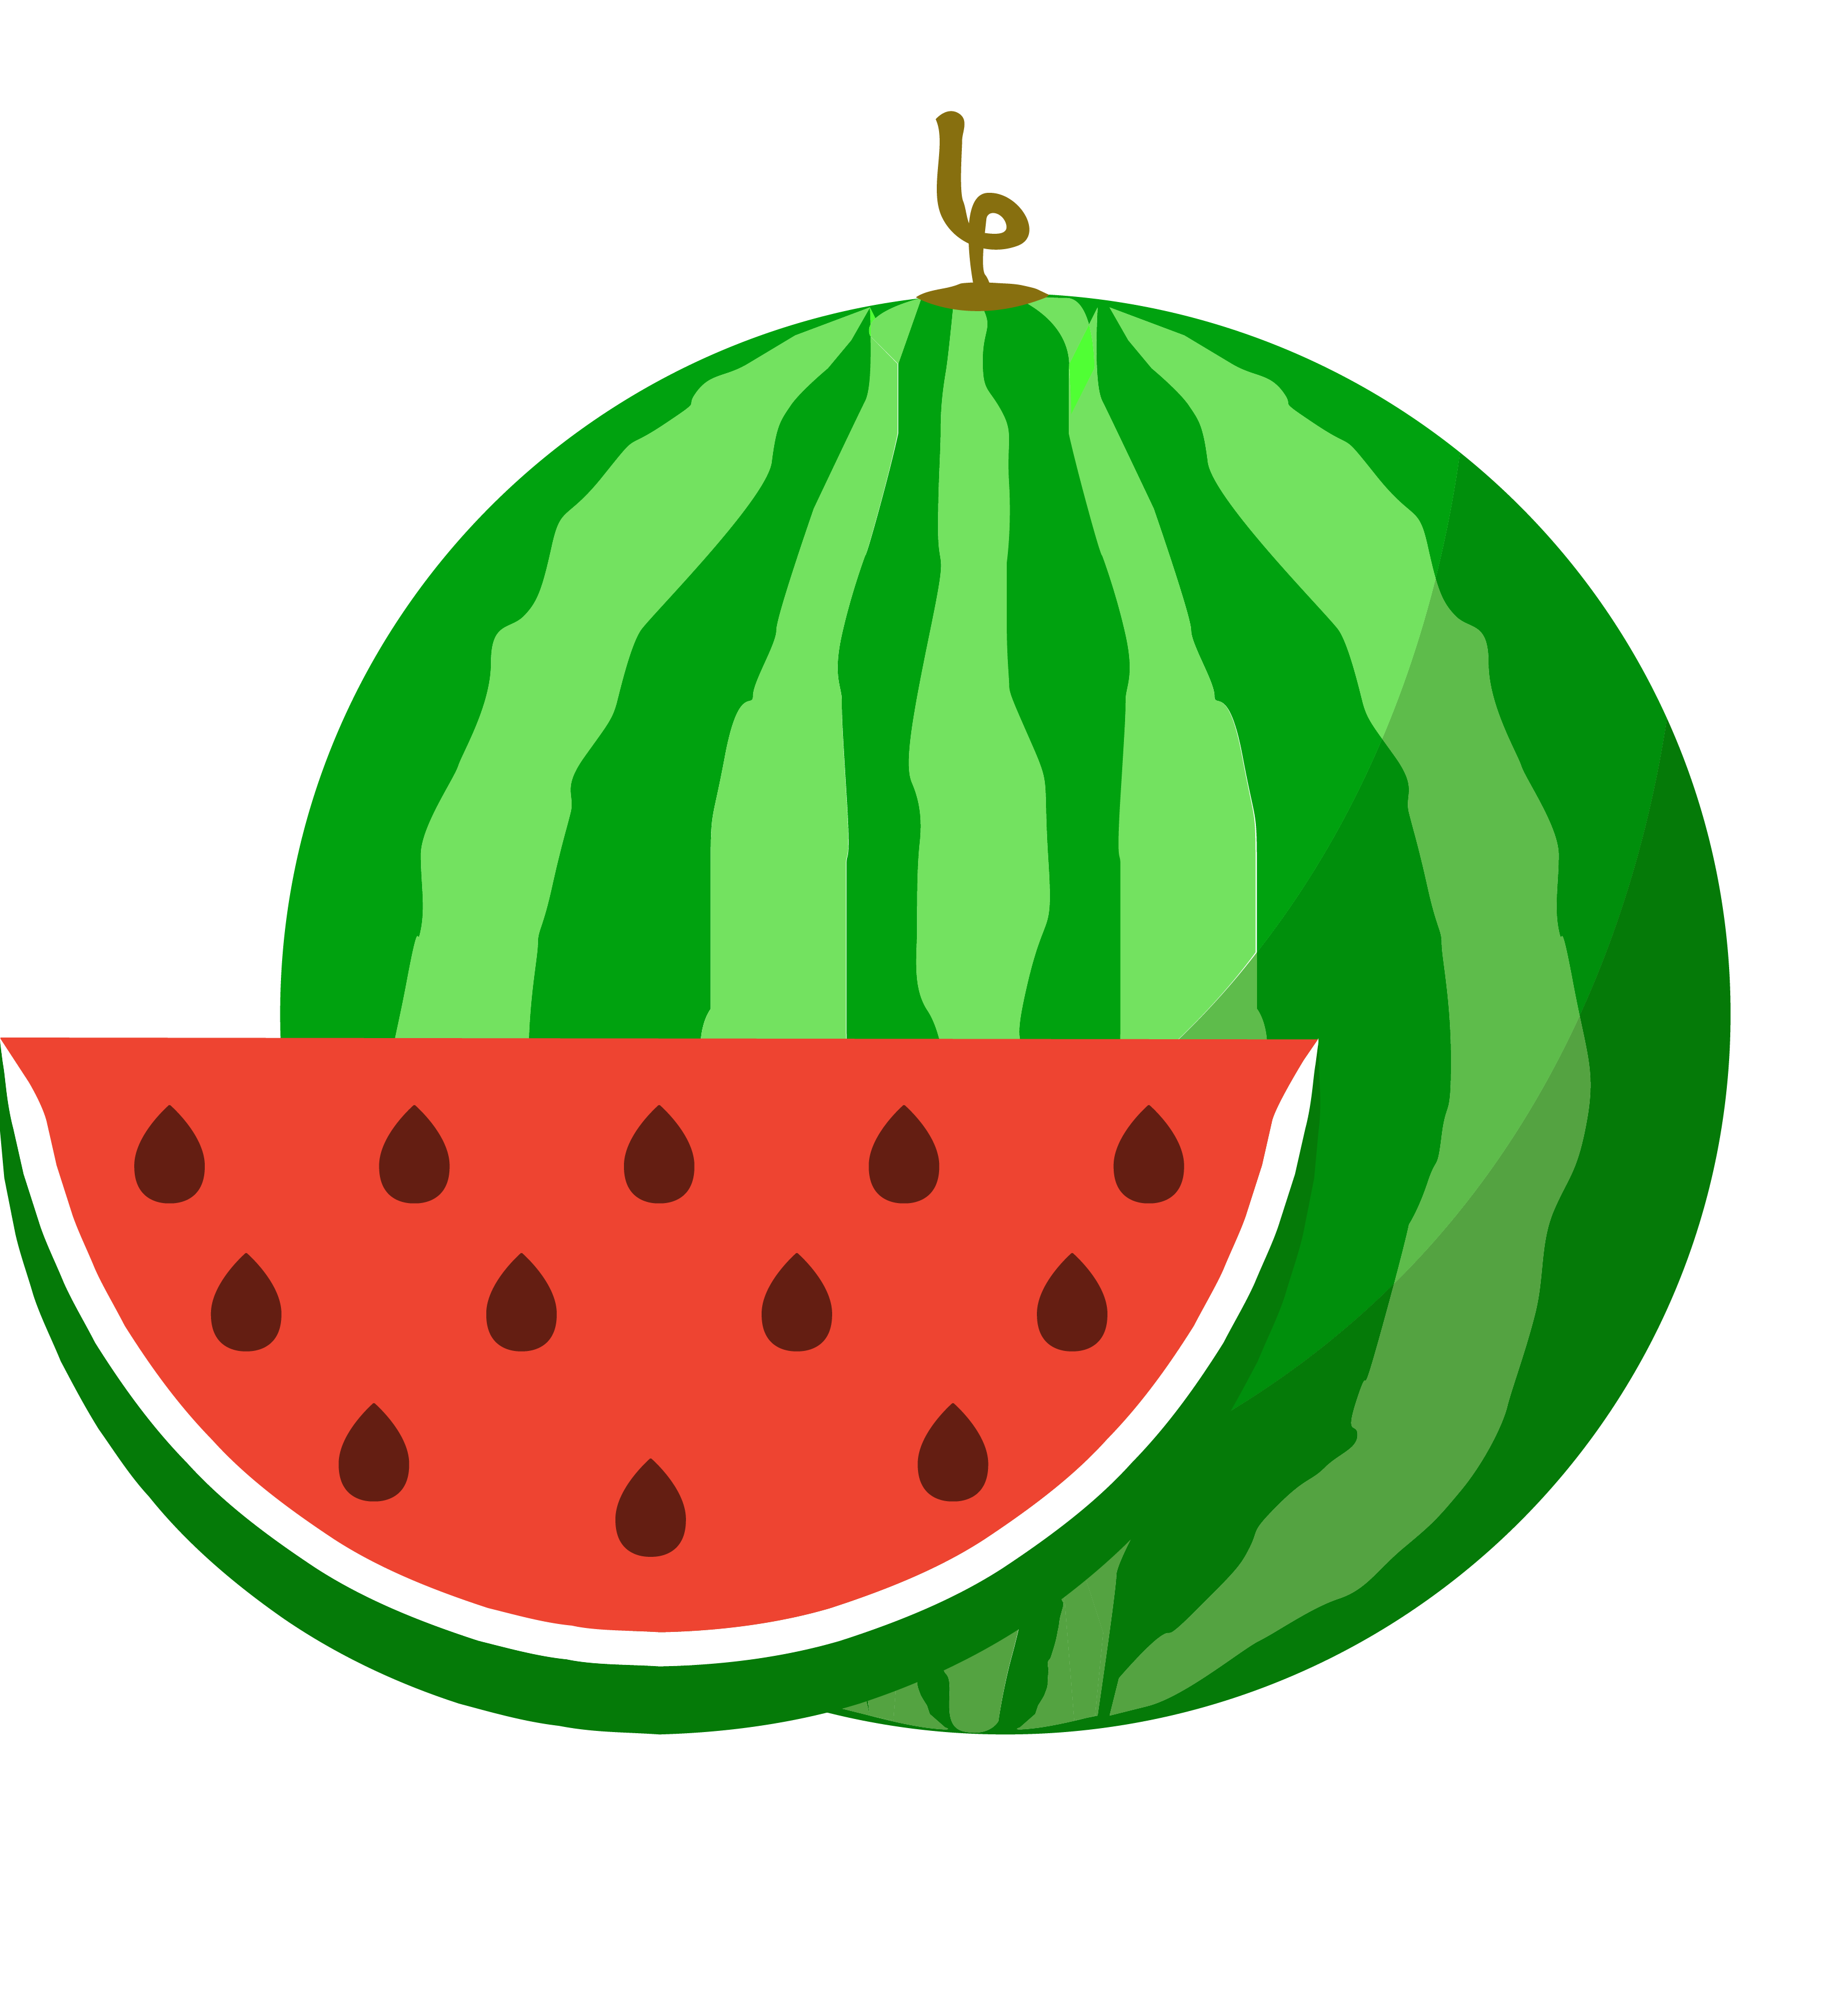 Lime clipart cucumber slice. Watermelon icon png transprent